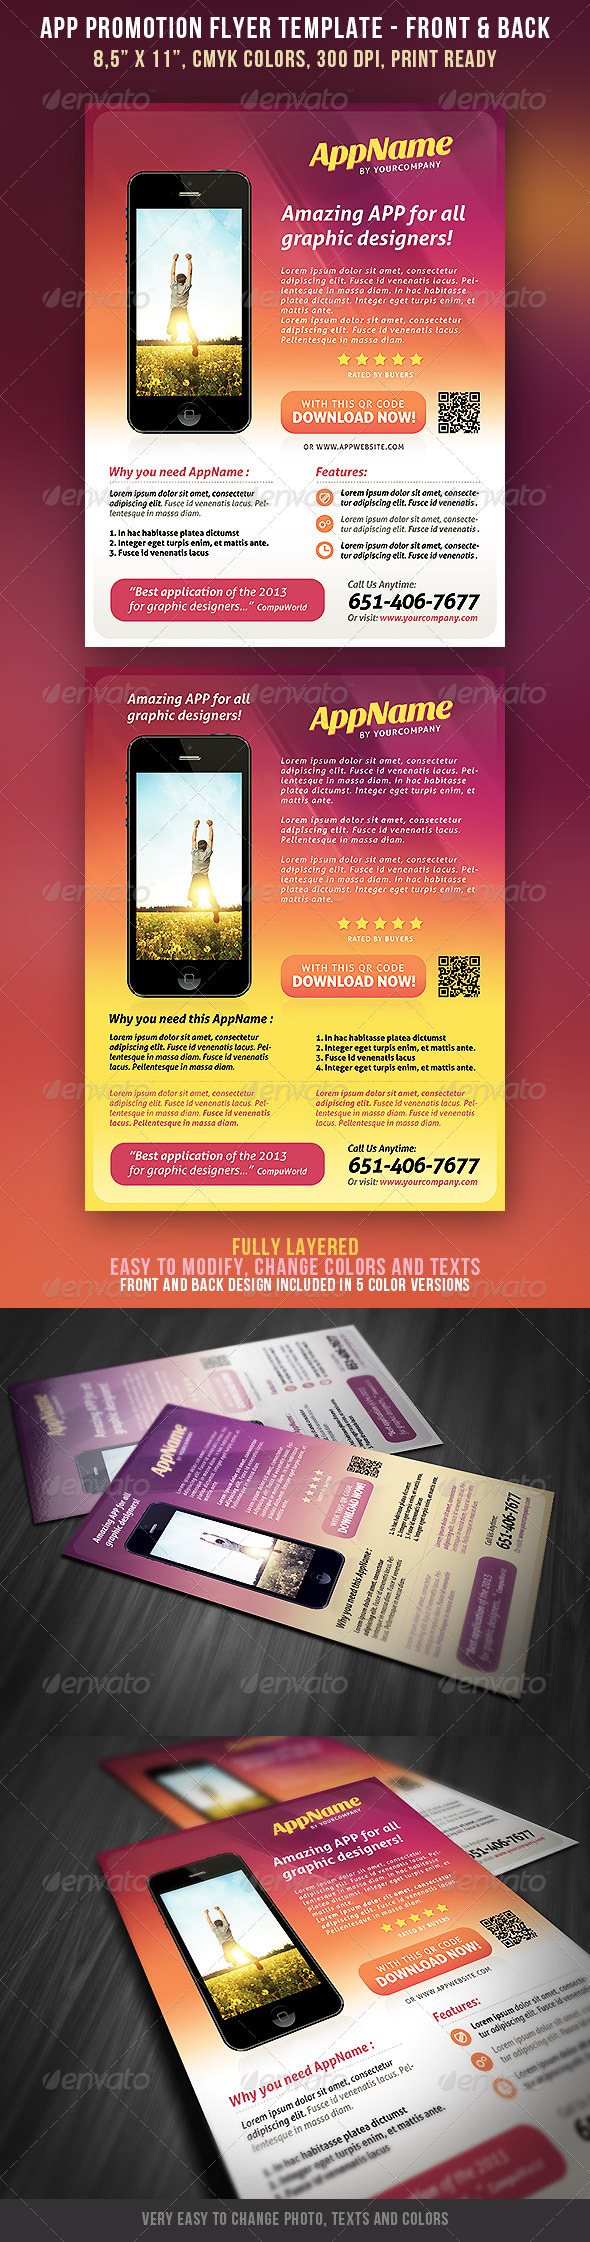 GraphicRiver App Promotion Flyer 2 4948485